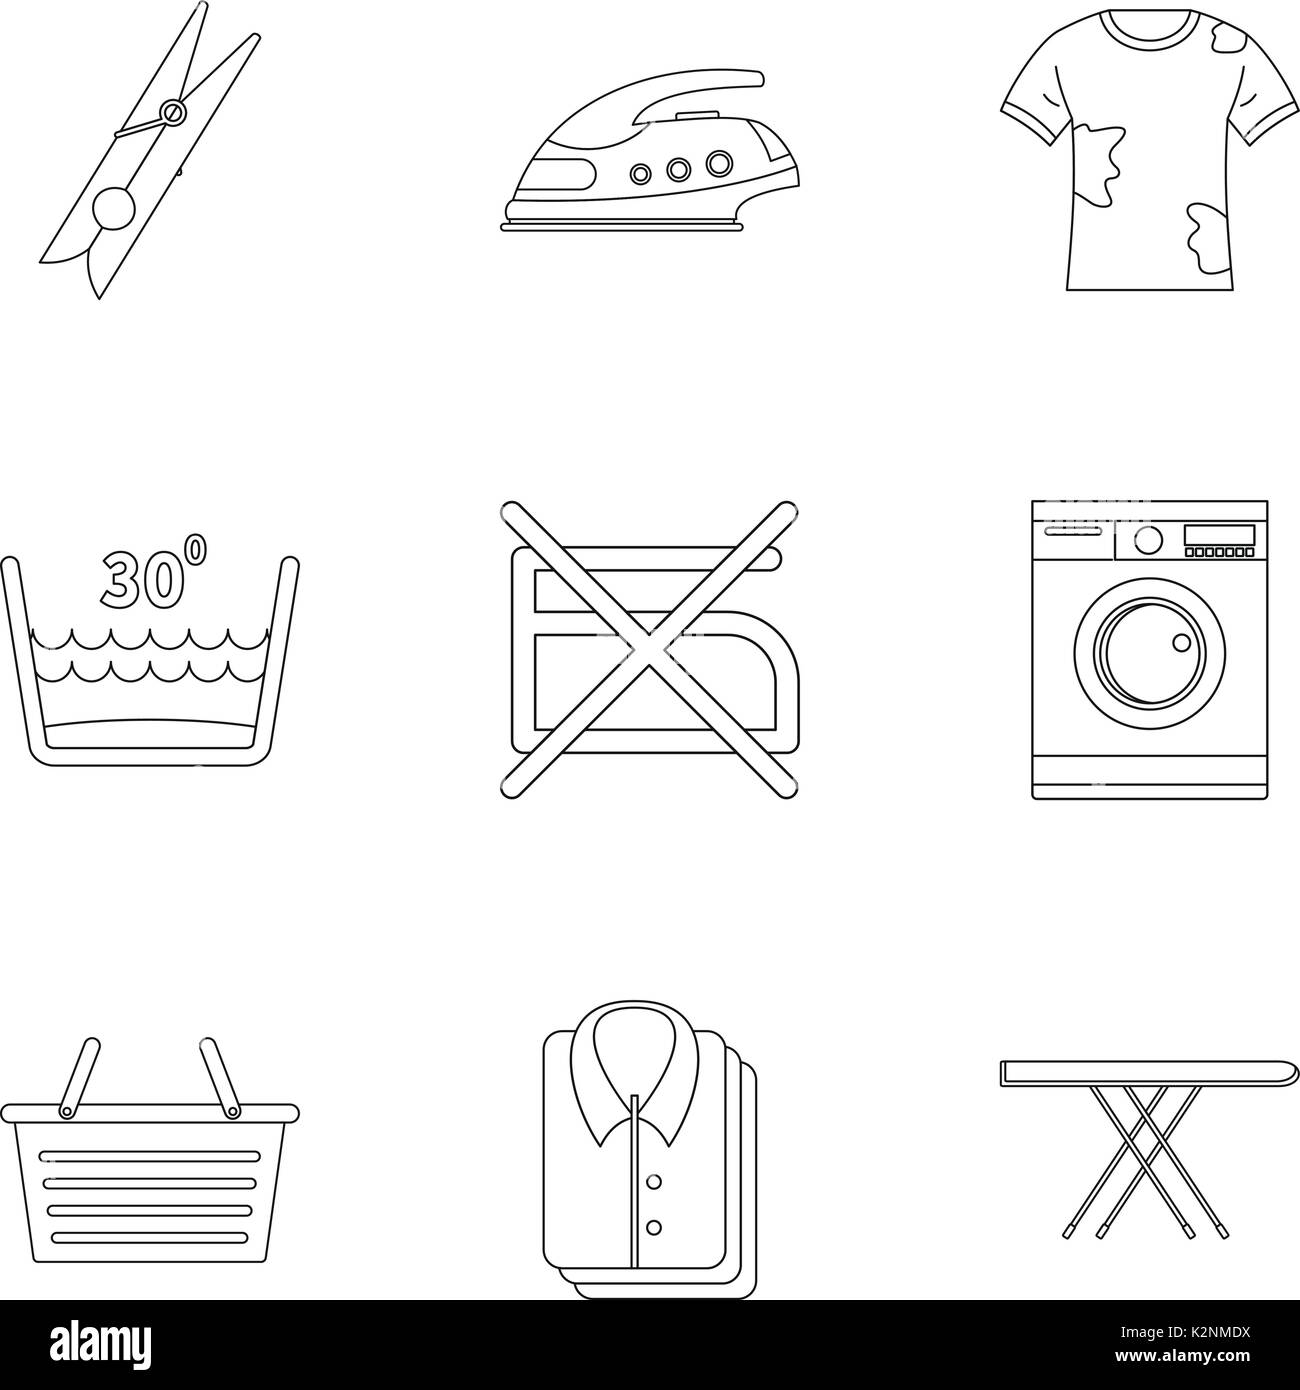 Dry Cleaning Symbol Black And White Stock Photos Images Alamy